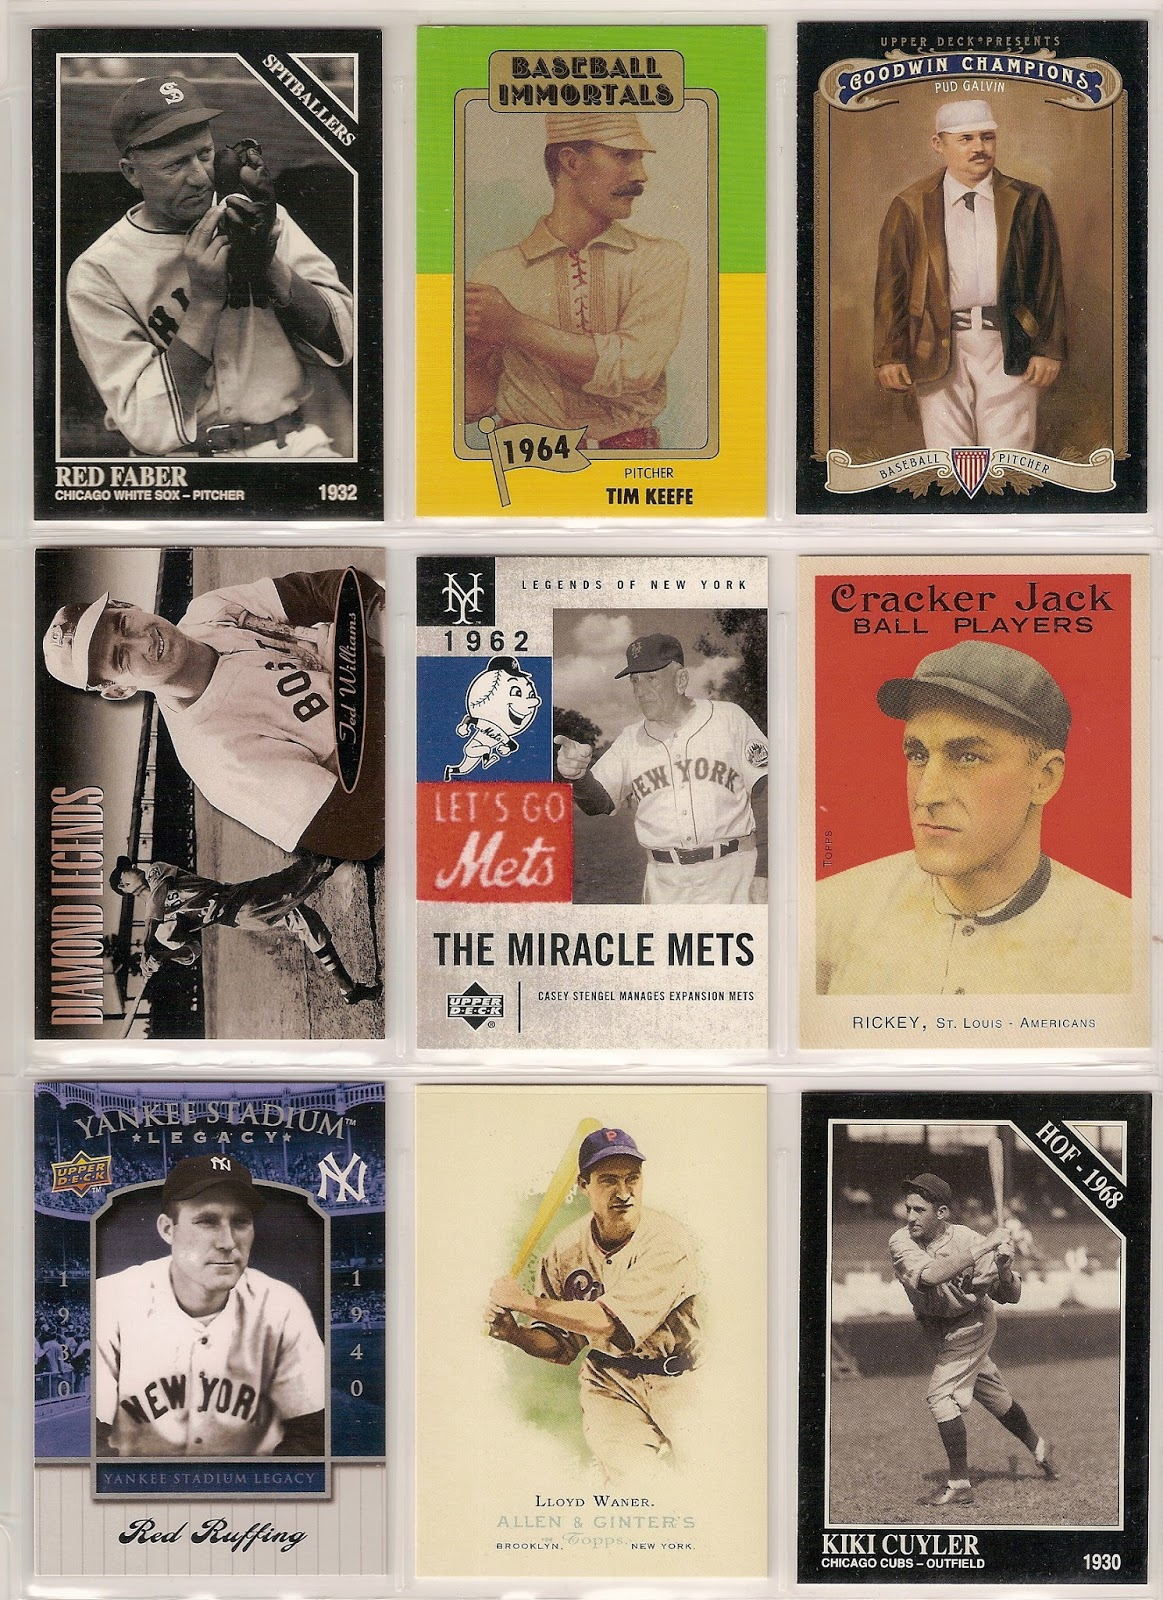 red cardboard hall of fame binder 1969 roy campanella 1969 stan coveleski 1970 lou boudreau 1970 earle combs 1970 ford frick